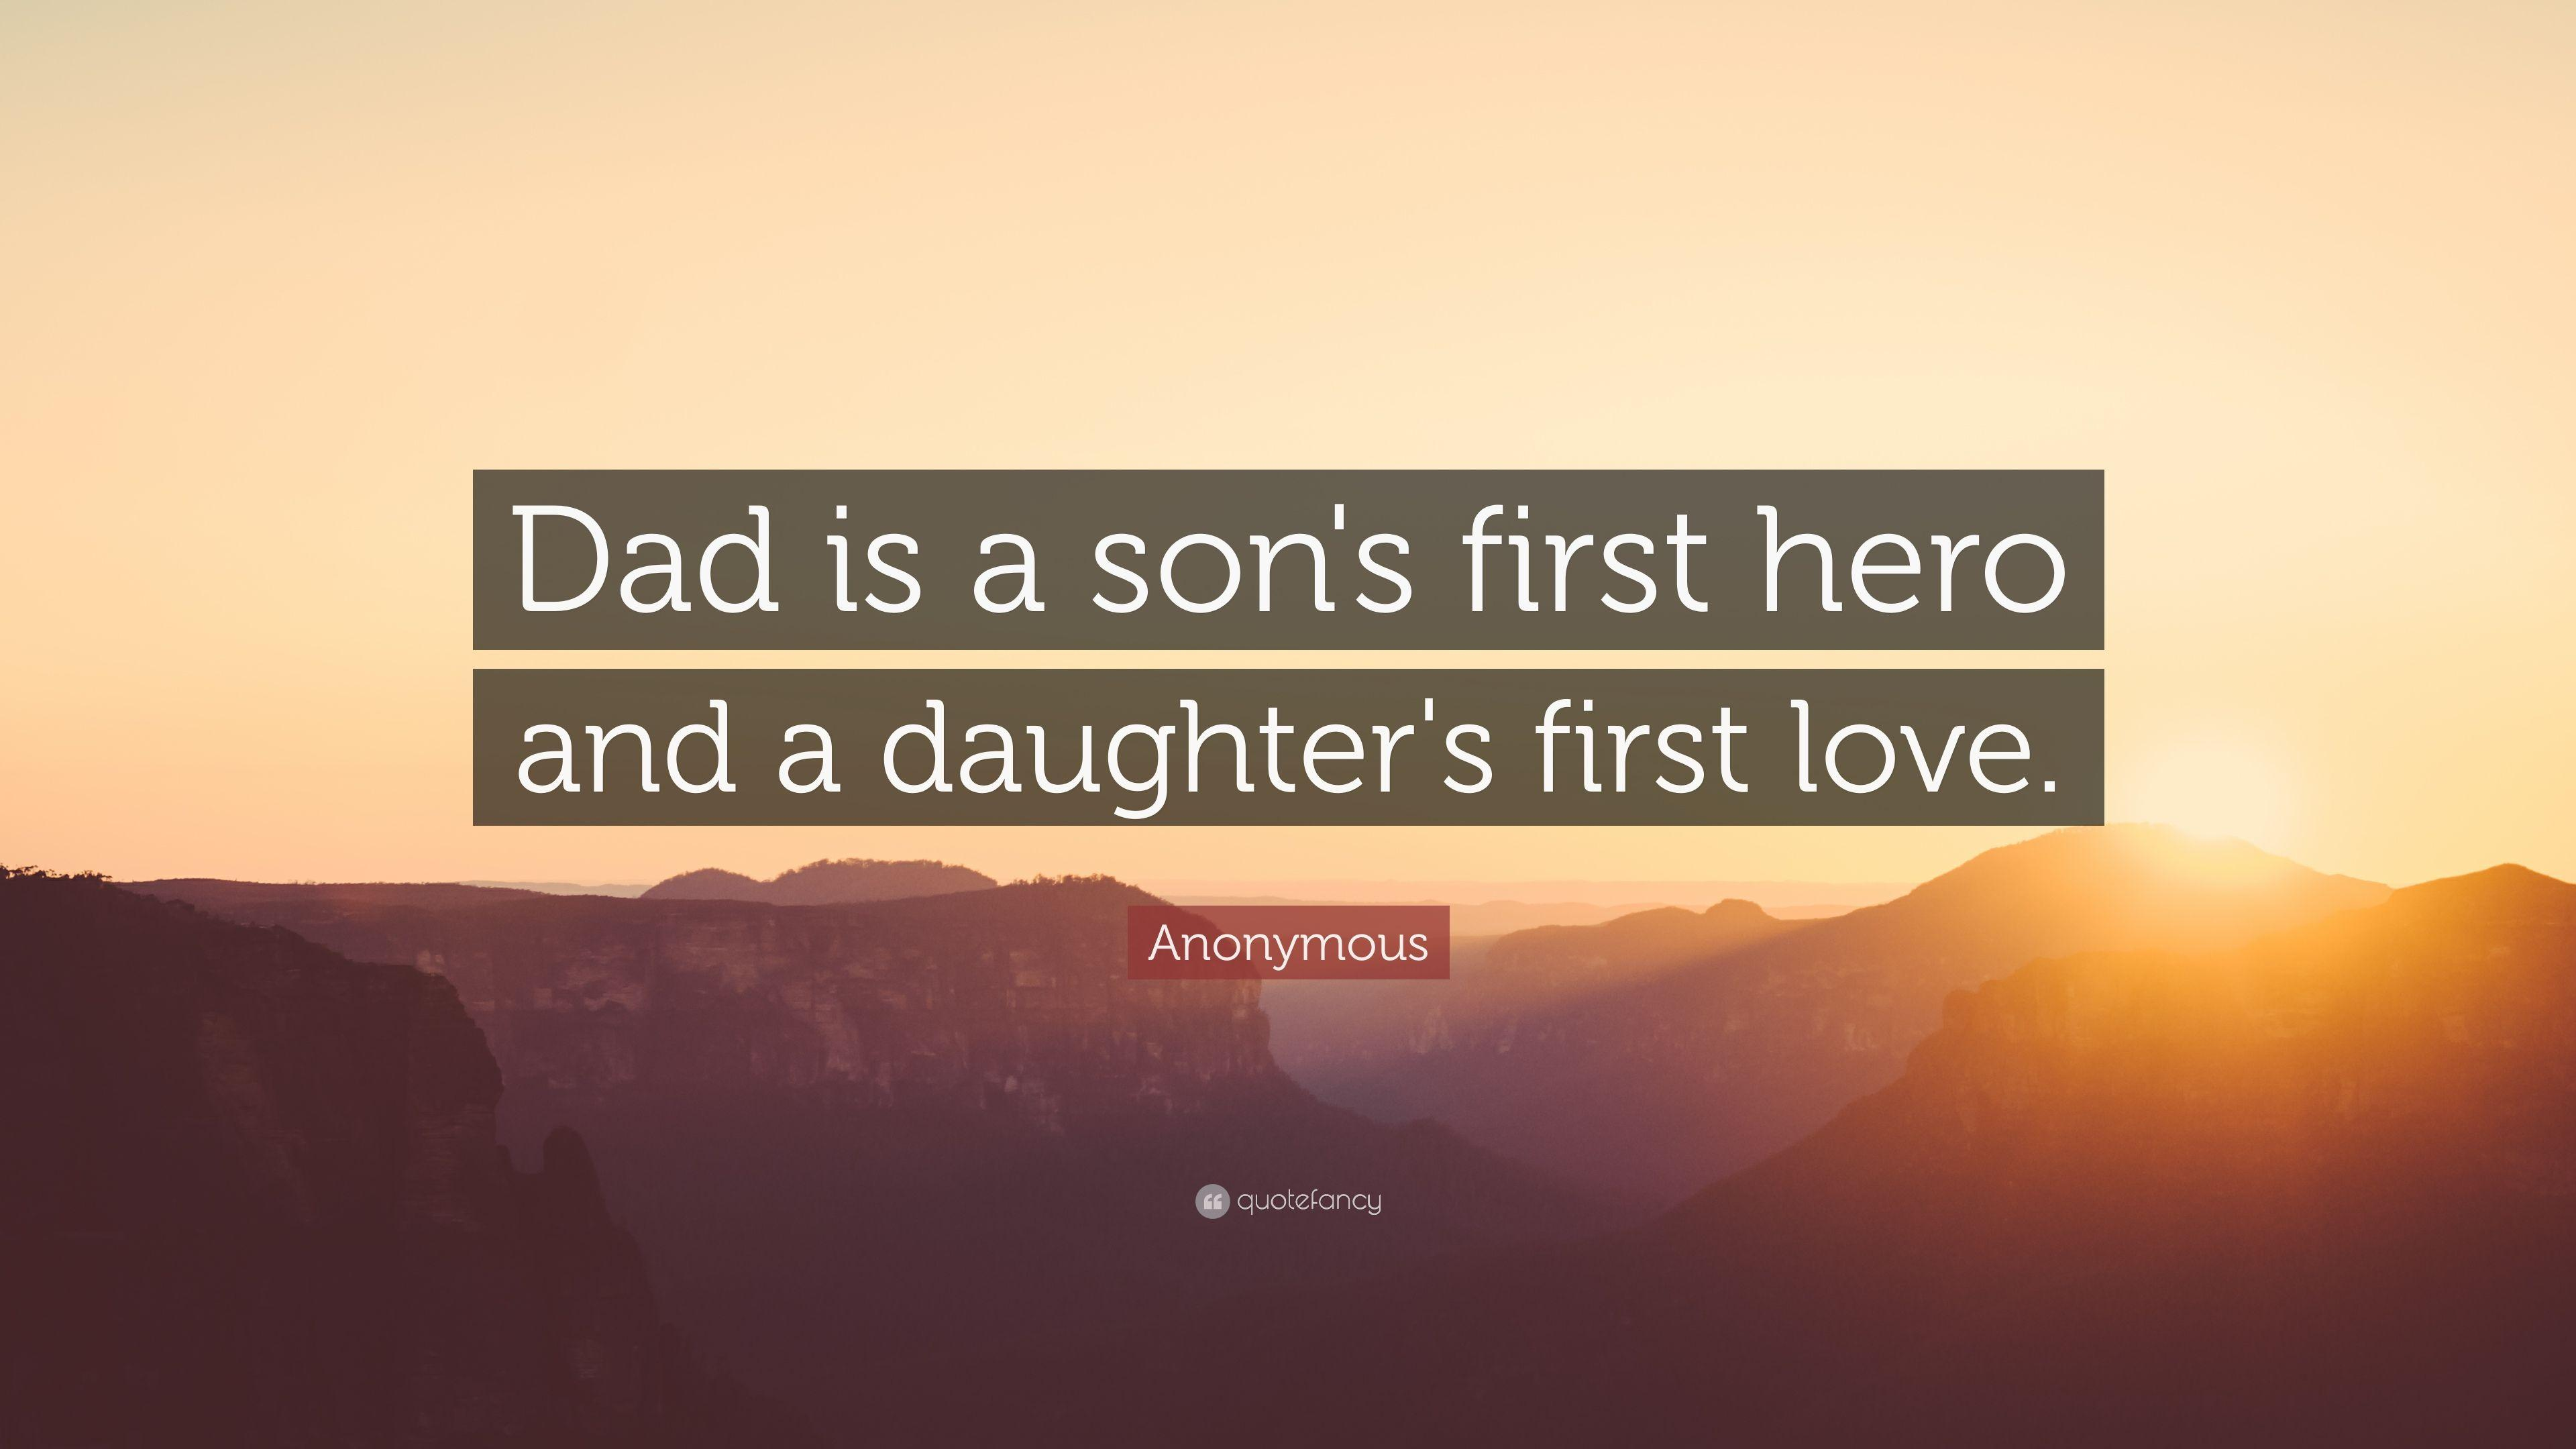 Dad And Daughter Quotes Wallpapers: Wallpaper Cave